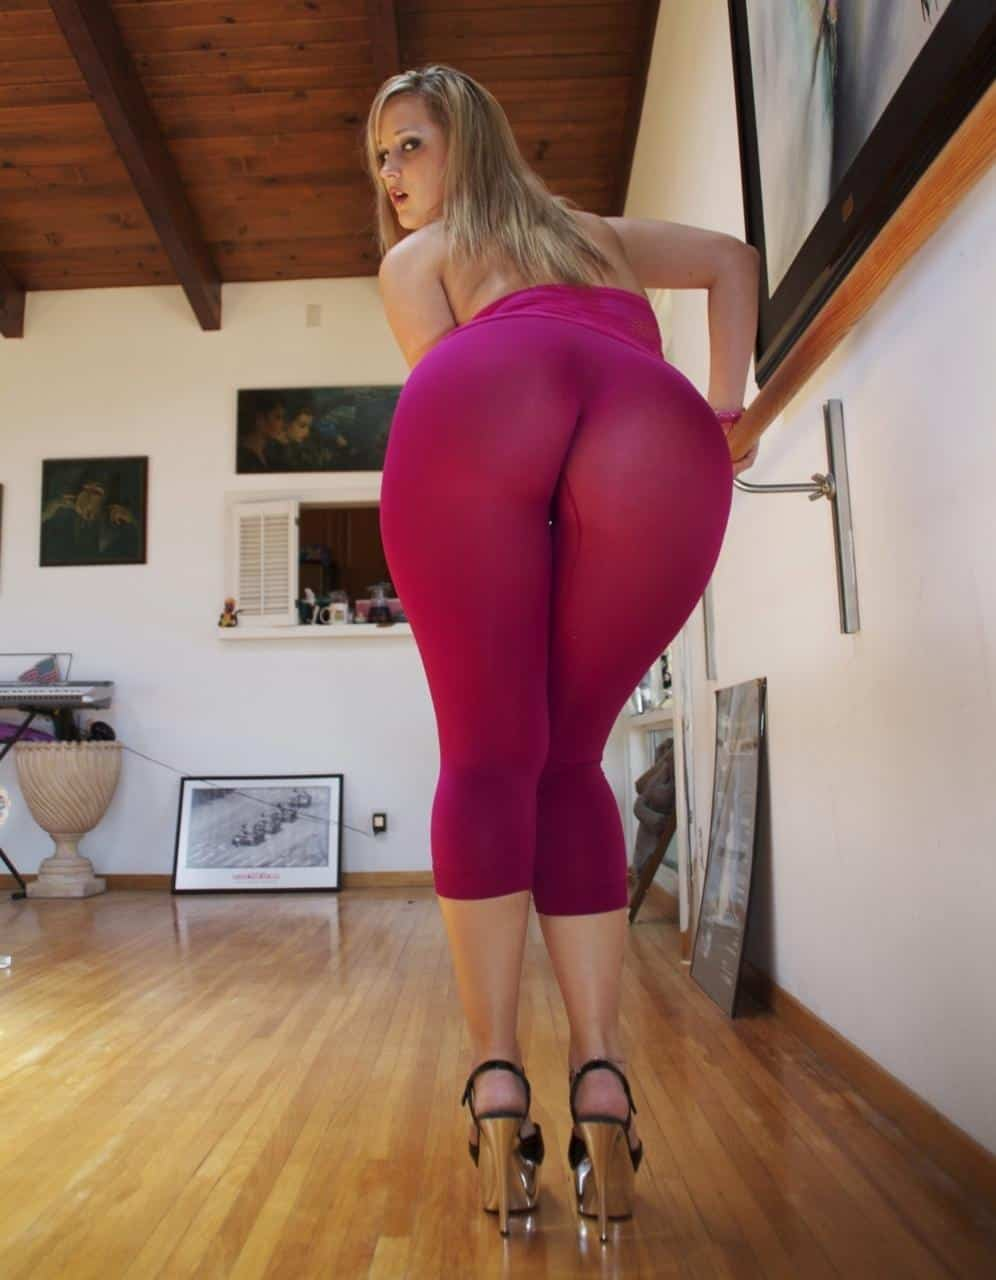 Blonde Big Ass Porno